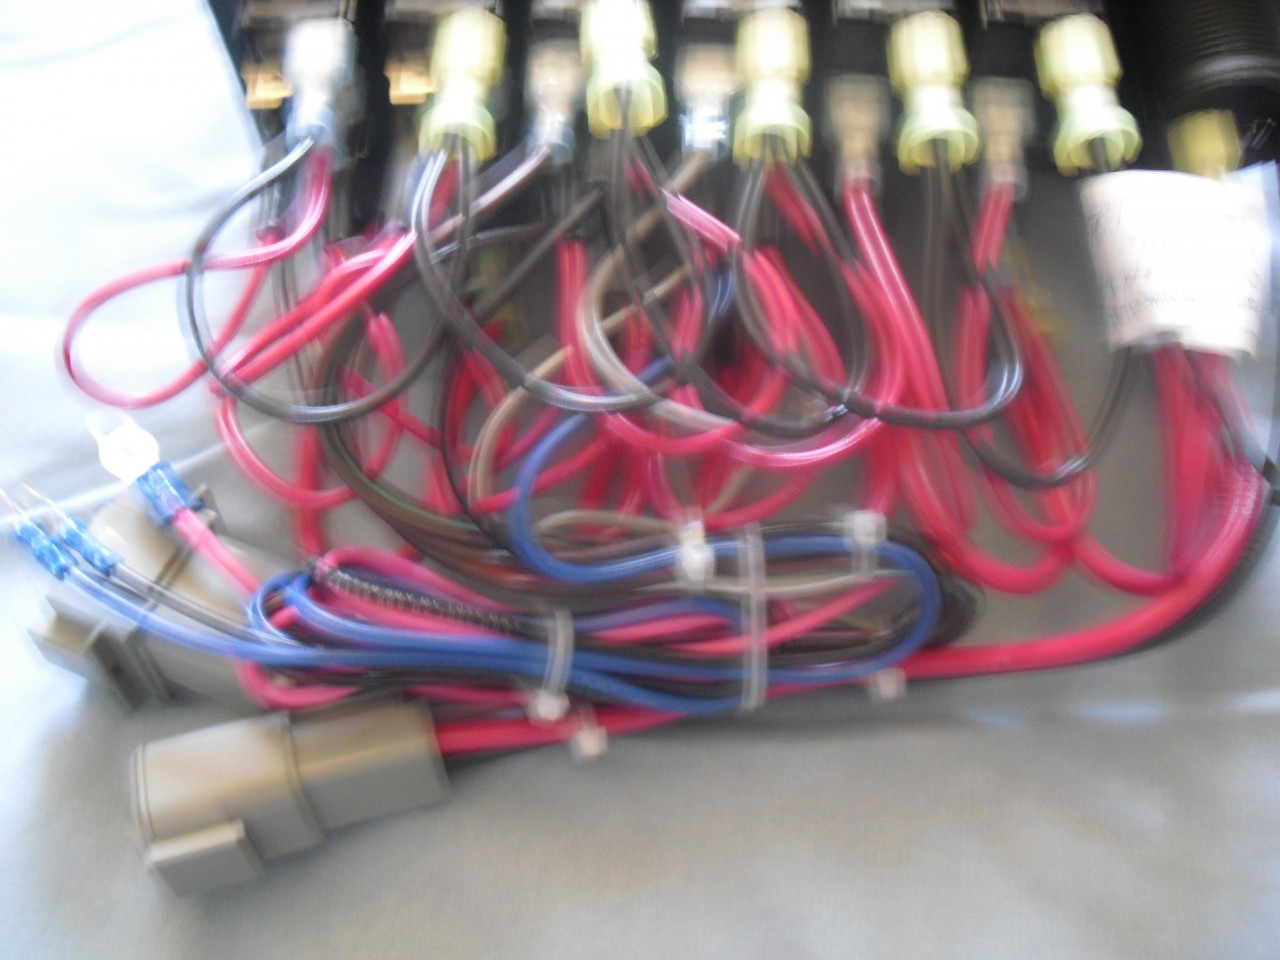 Switch Panel 12 Volt Accessory Action Craft Boat Parts Wiring A Price 34000 Image 1 Larger More Photos